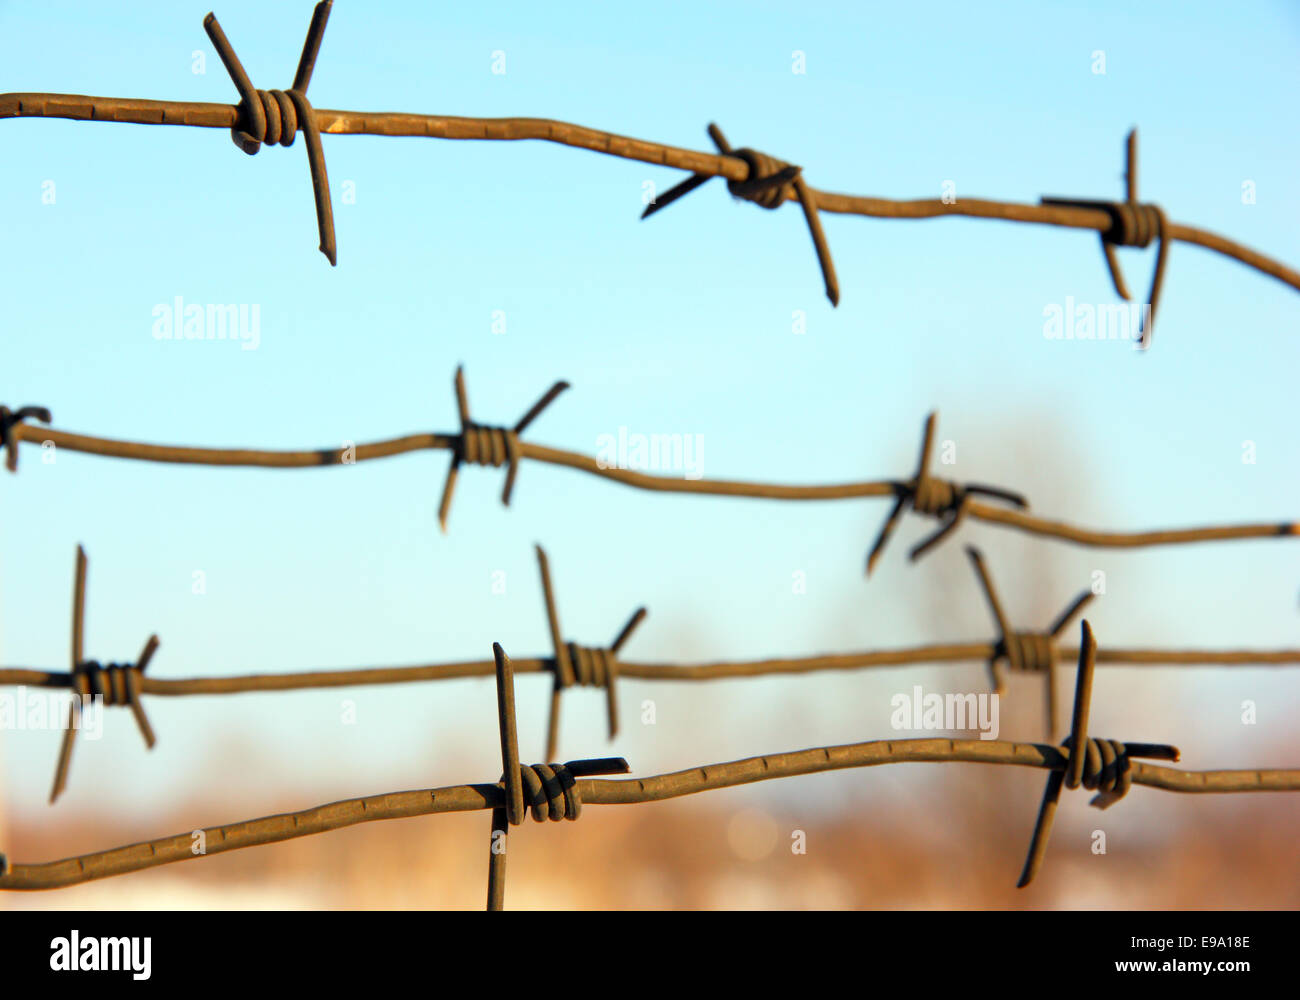 barbed wires against blue sky. - Stock Image